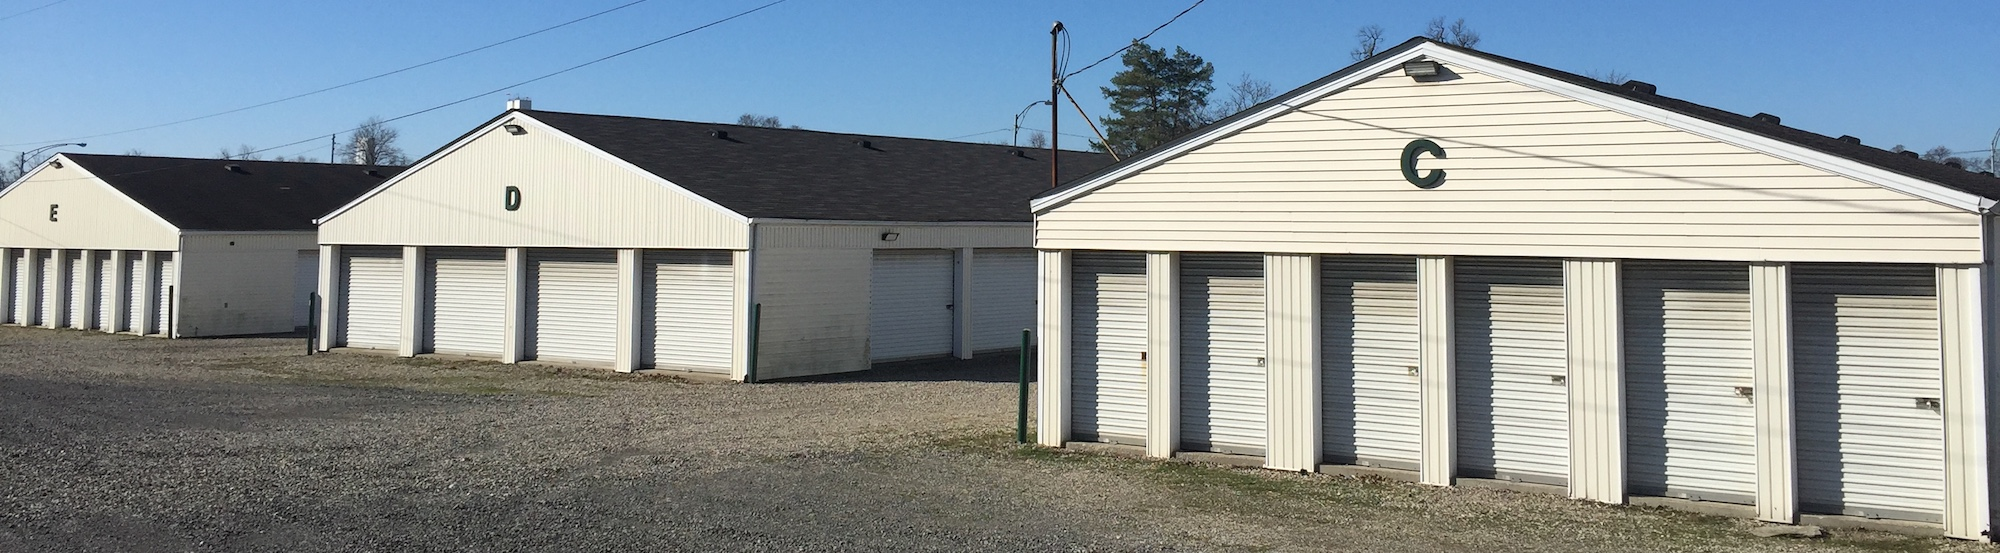 University Self Storage facility from front